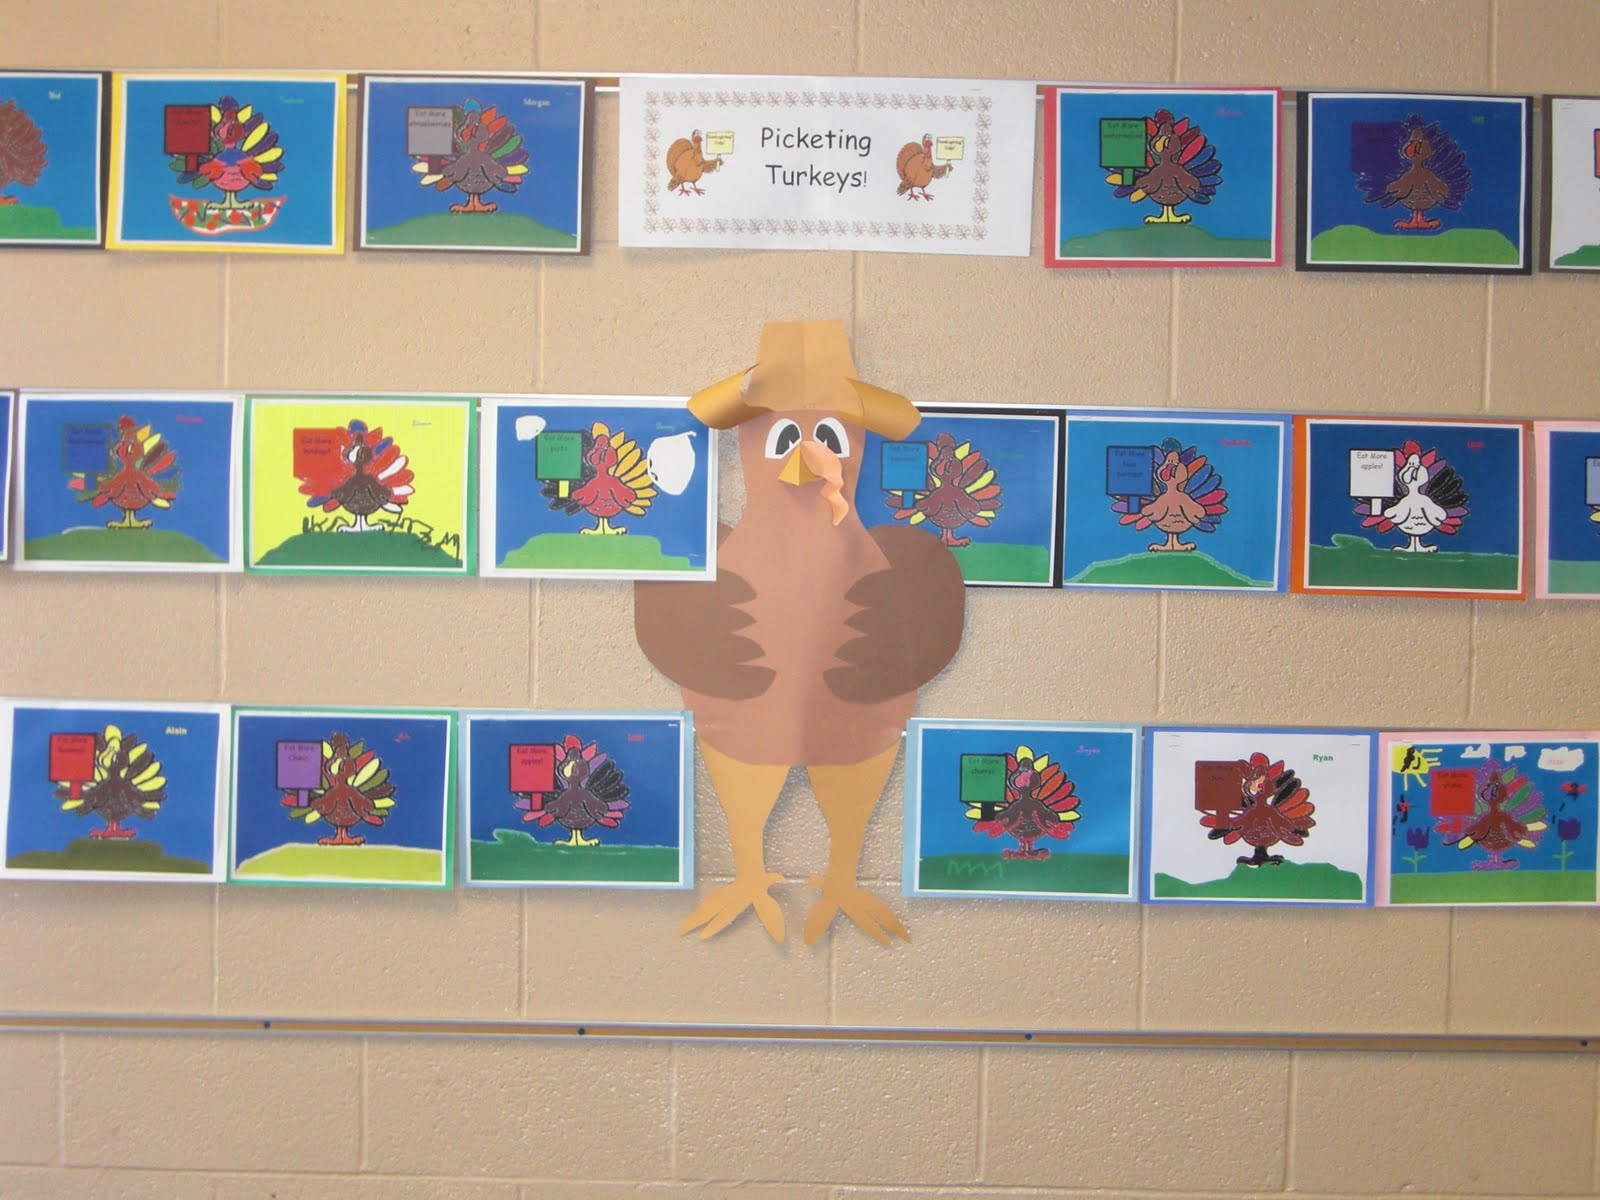 A Turkey For Thanksgiving By Eve Bunting Activities  K 5 Technology Lessons Picketing Turkeys